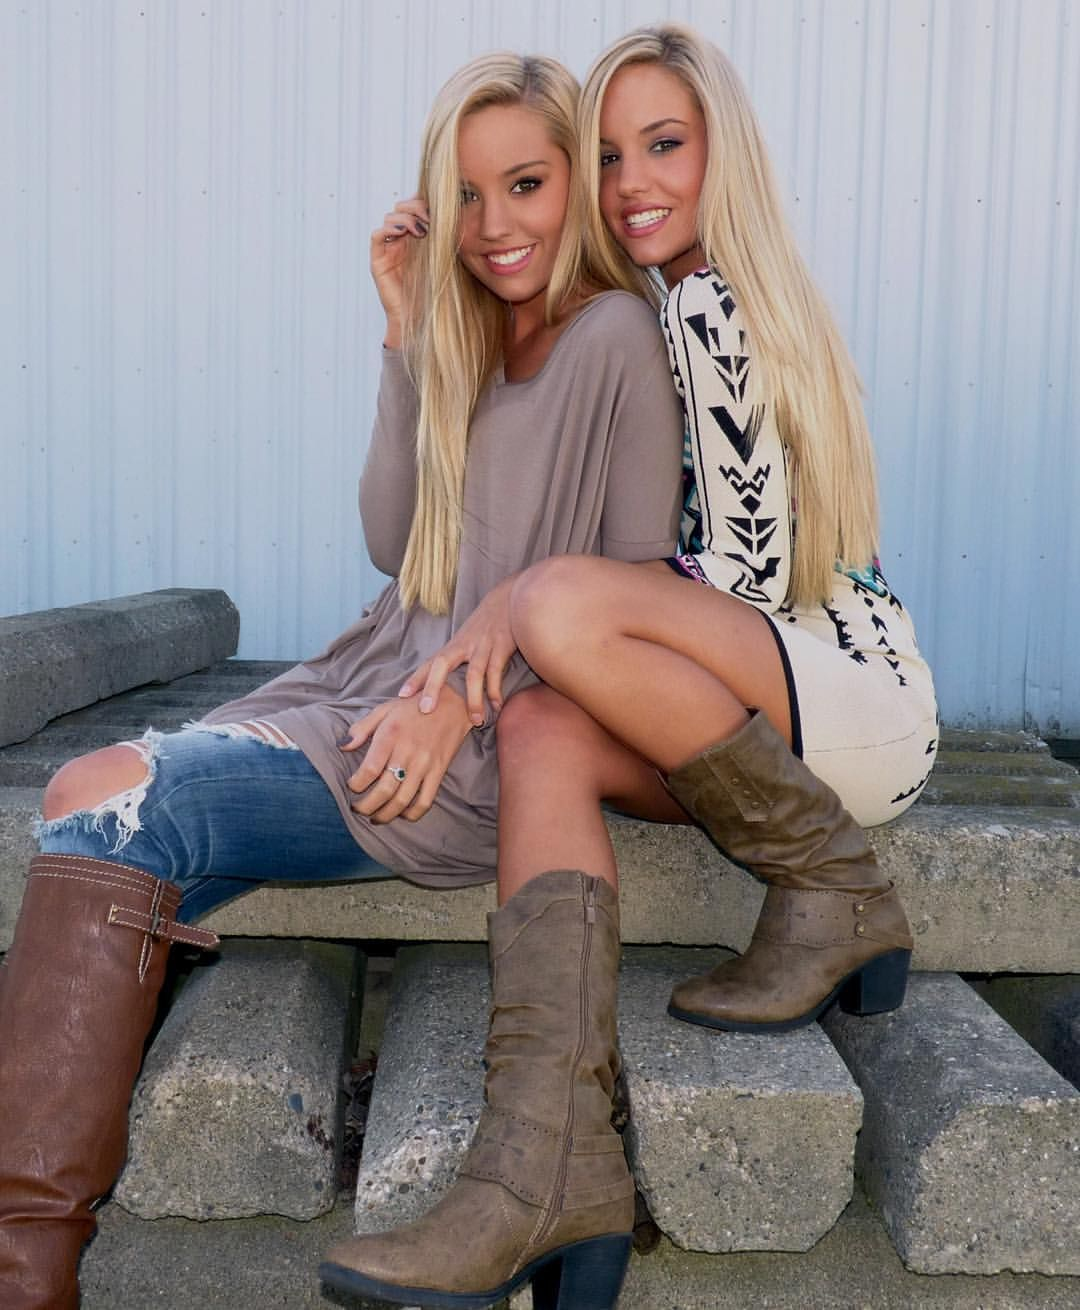 """Alex Steffes on Instagram: """"Love my beautiful twin sister @samanthasteffes & these @shopmvb outfits! """""""